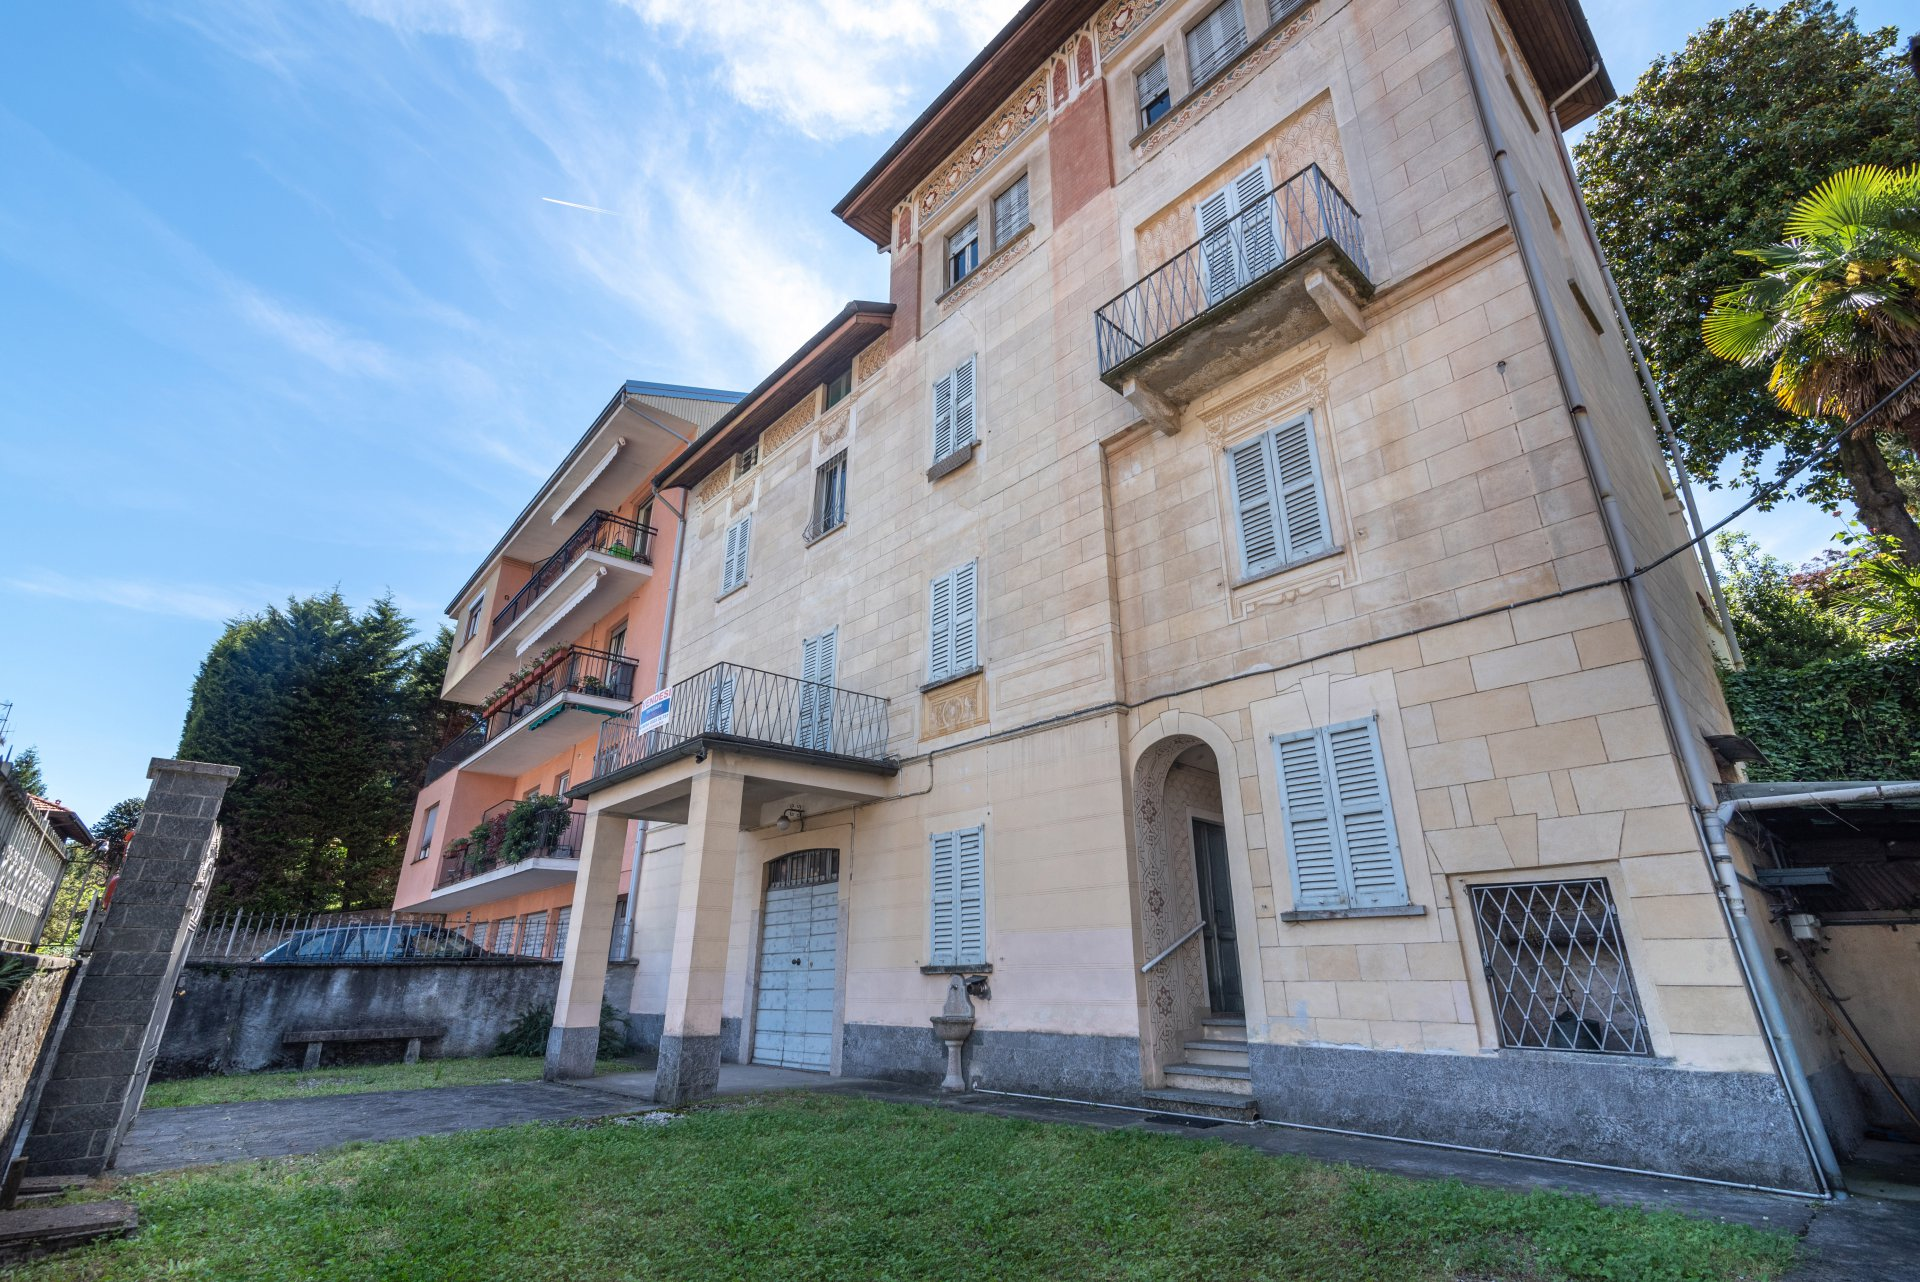 Property for sale in the centre of Stresa- real estate with garden